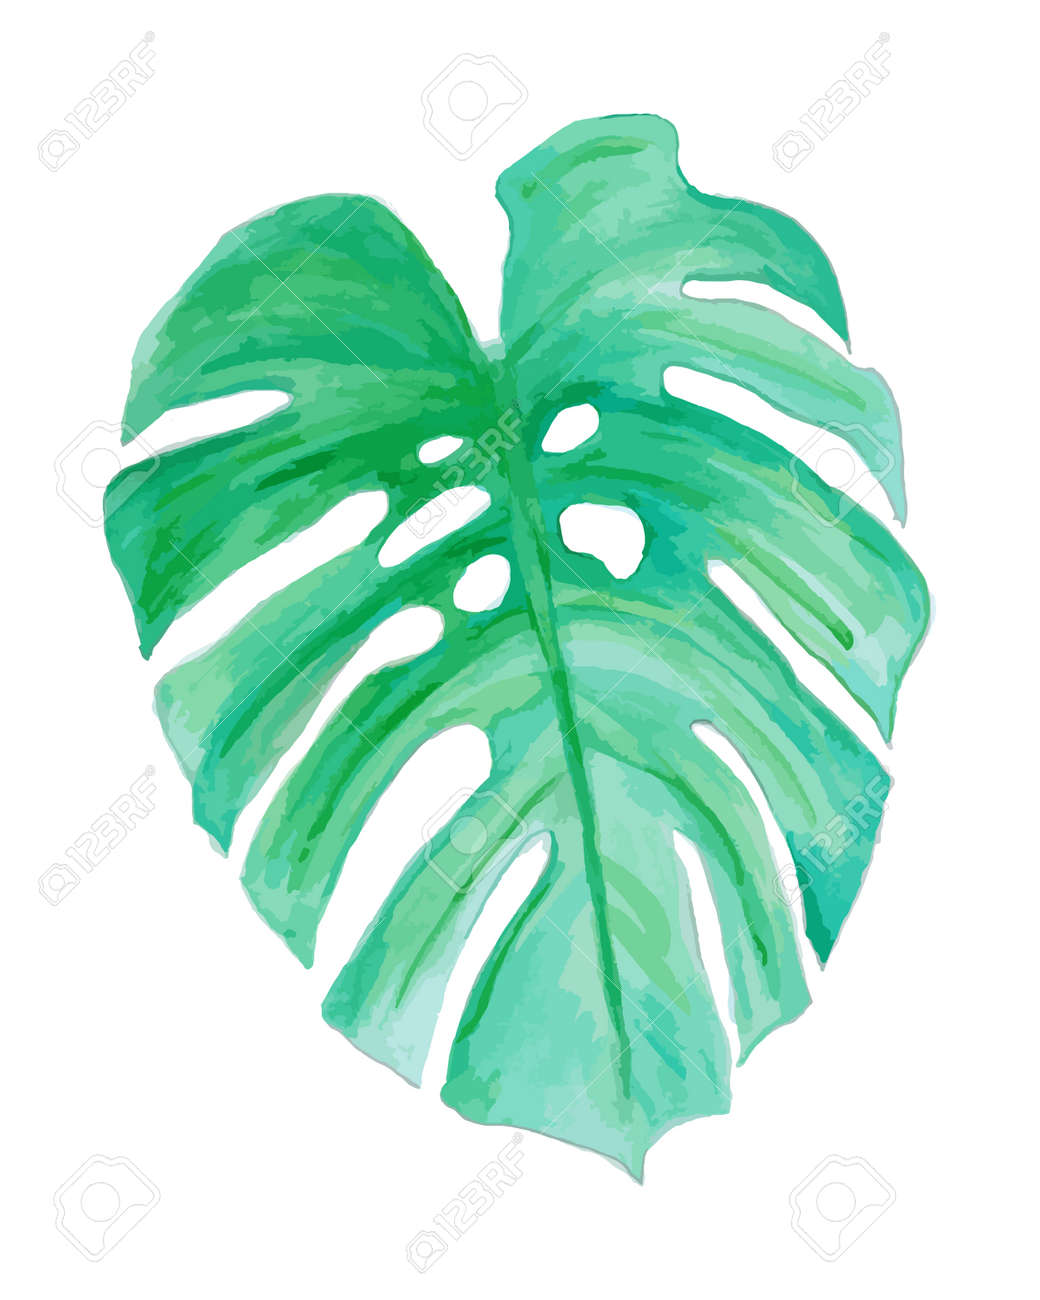 Watercolor Drawing Palm Trees Or Green Leaves Royalty Free Cliparts Vectors And Stock Illustration Image 56875341